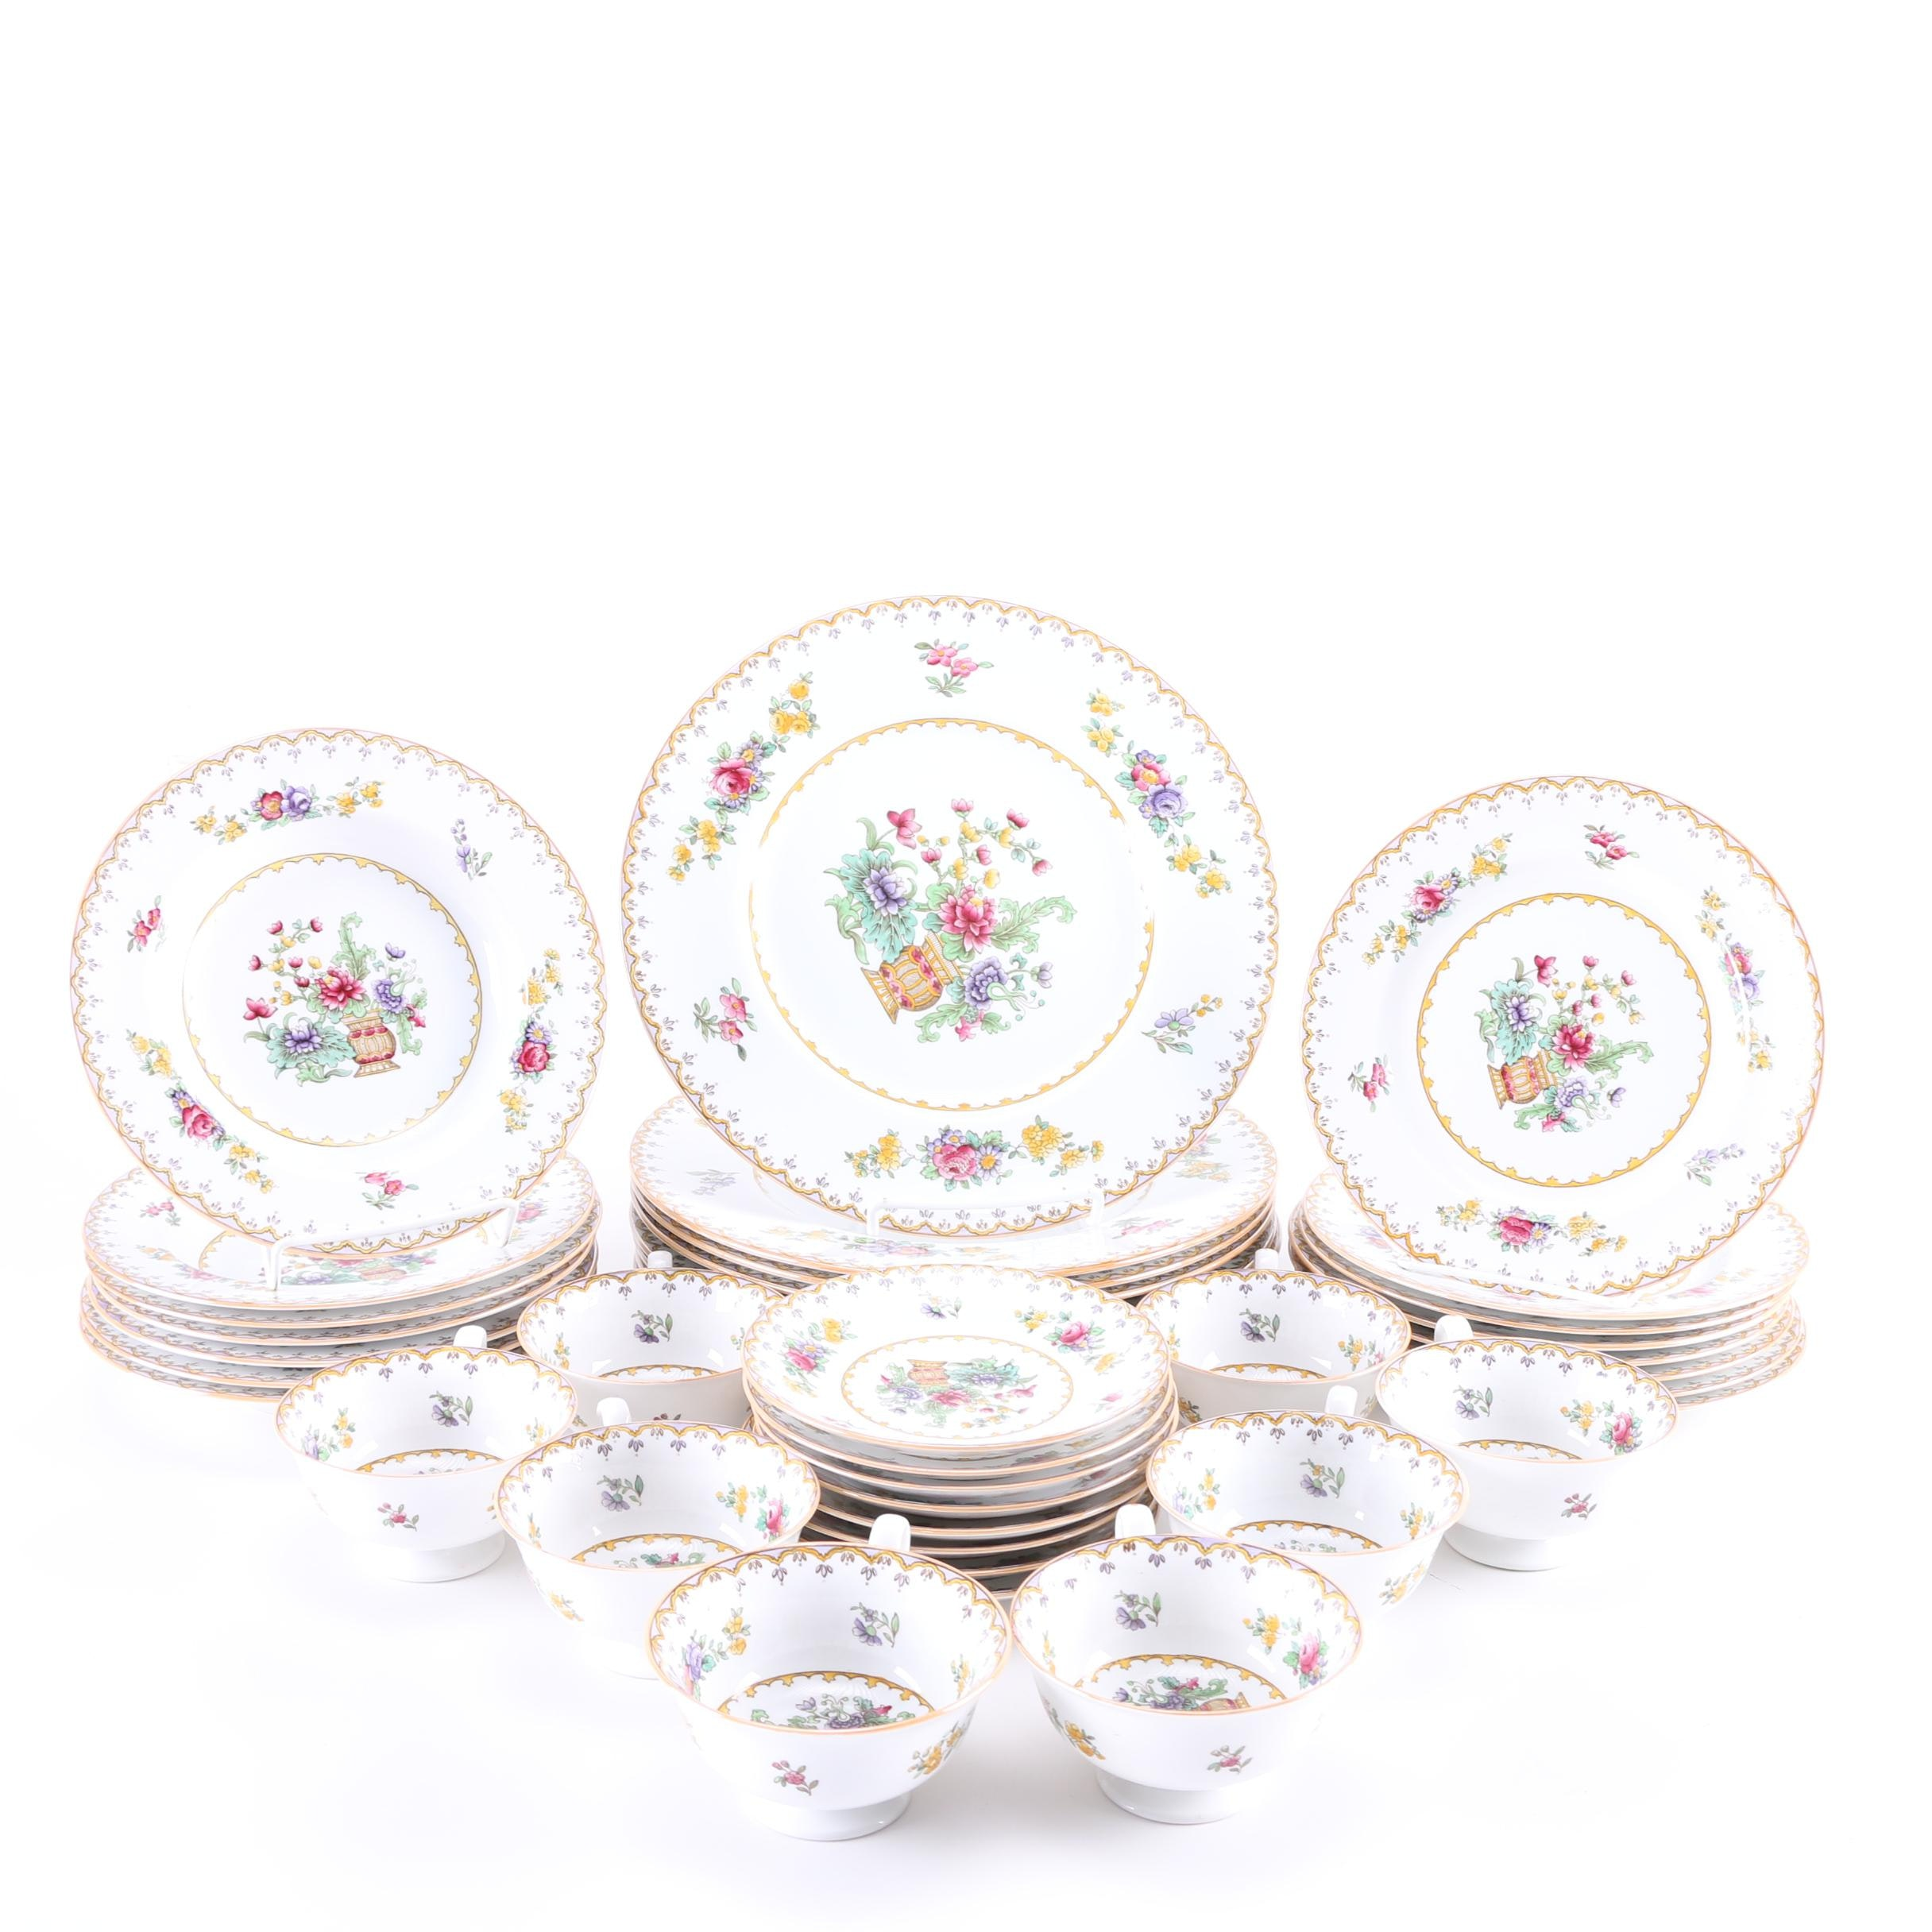 """Spode Porcelain Table Service in the """"Peplow"""" Pattern"""